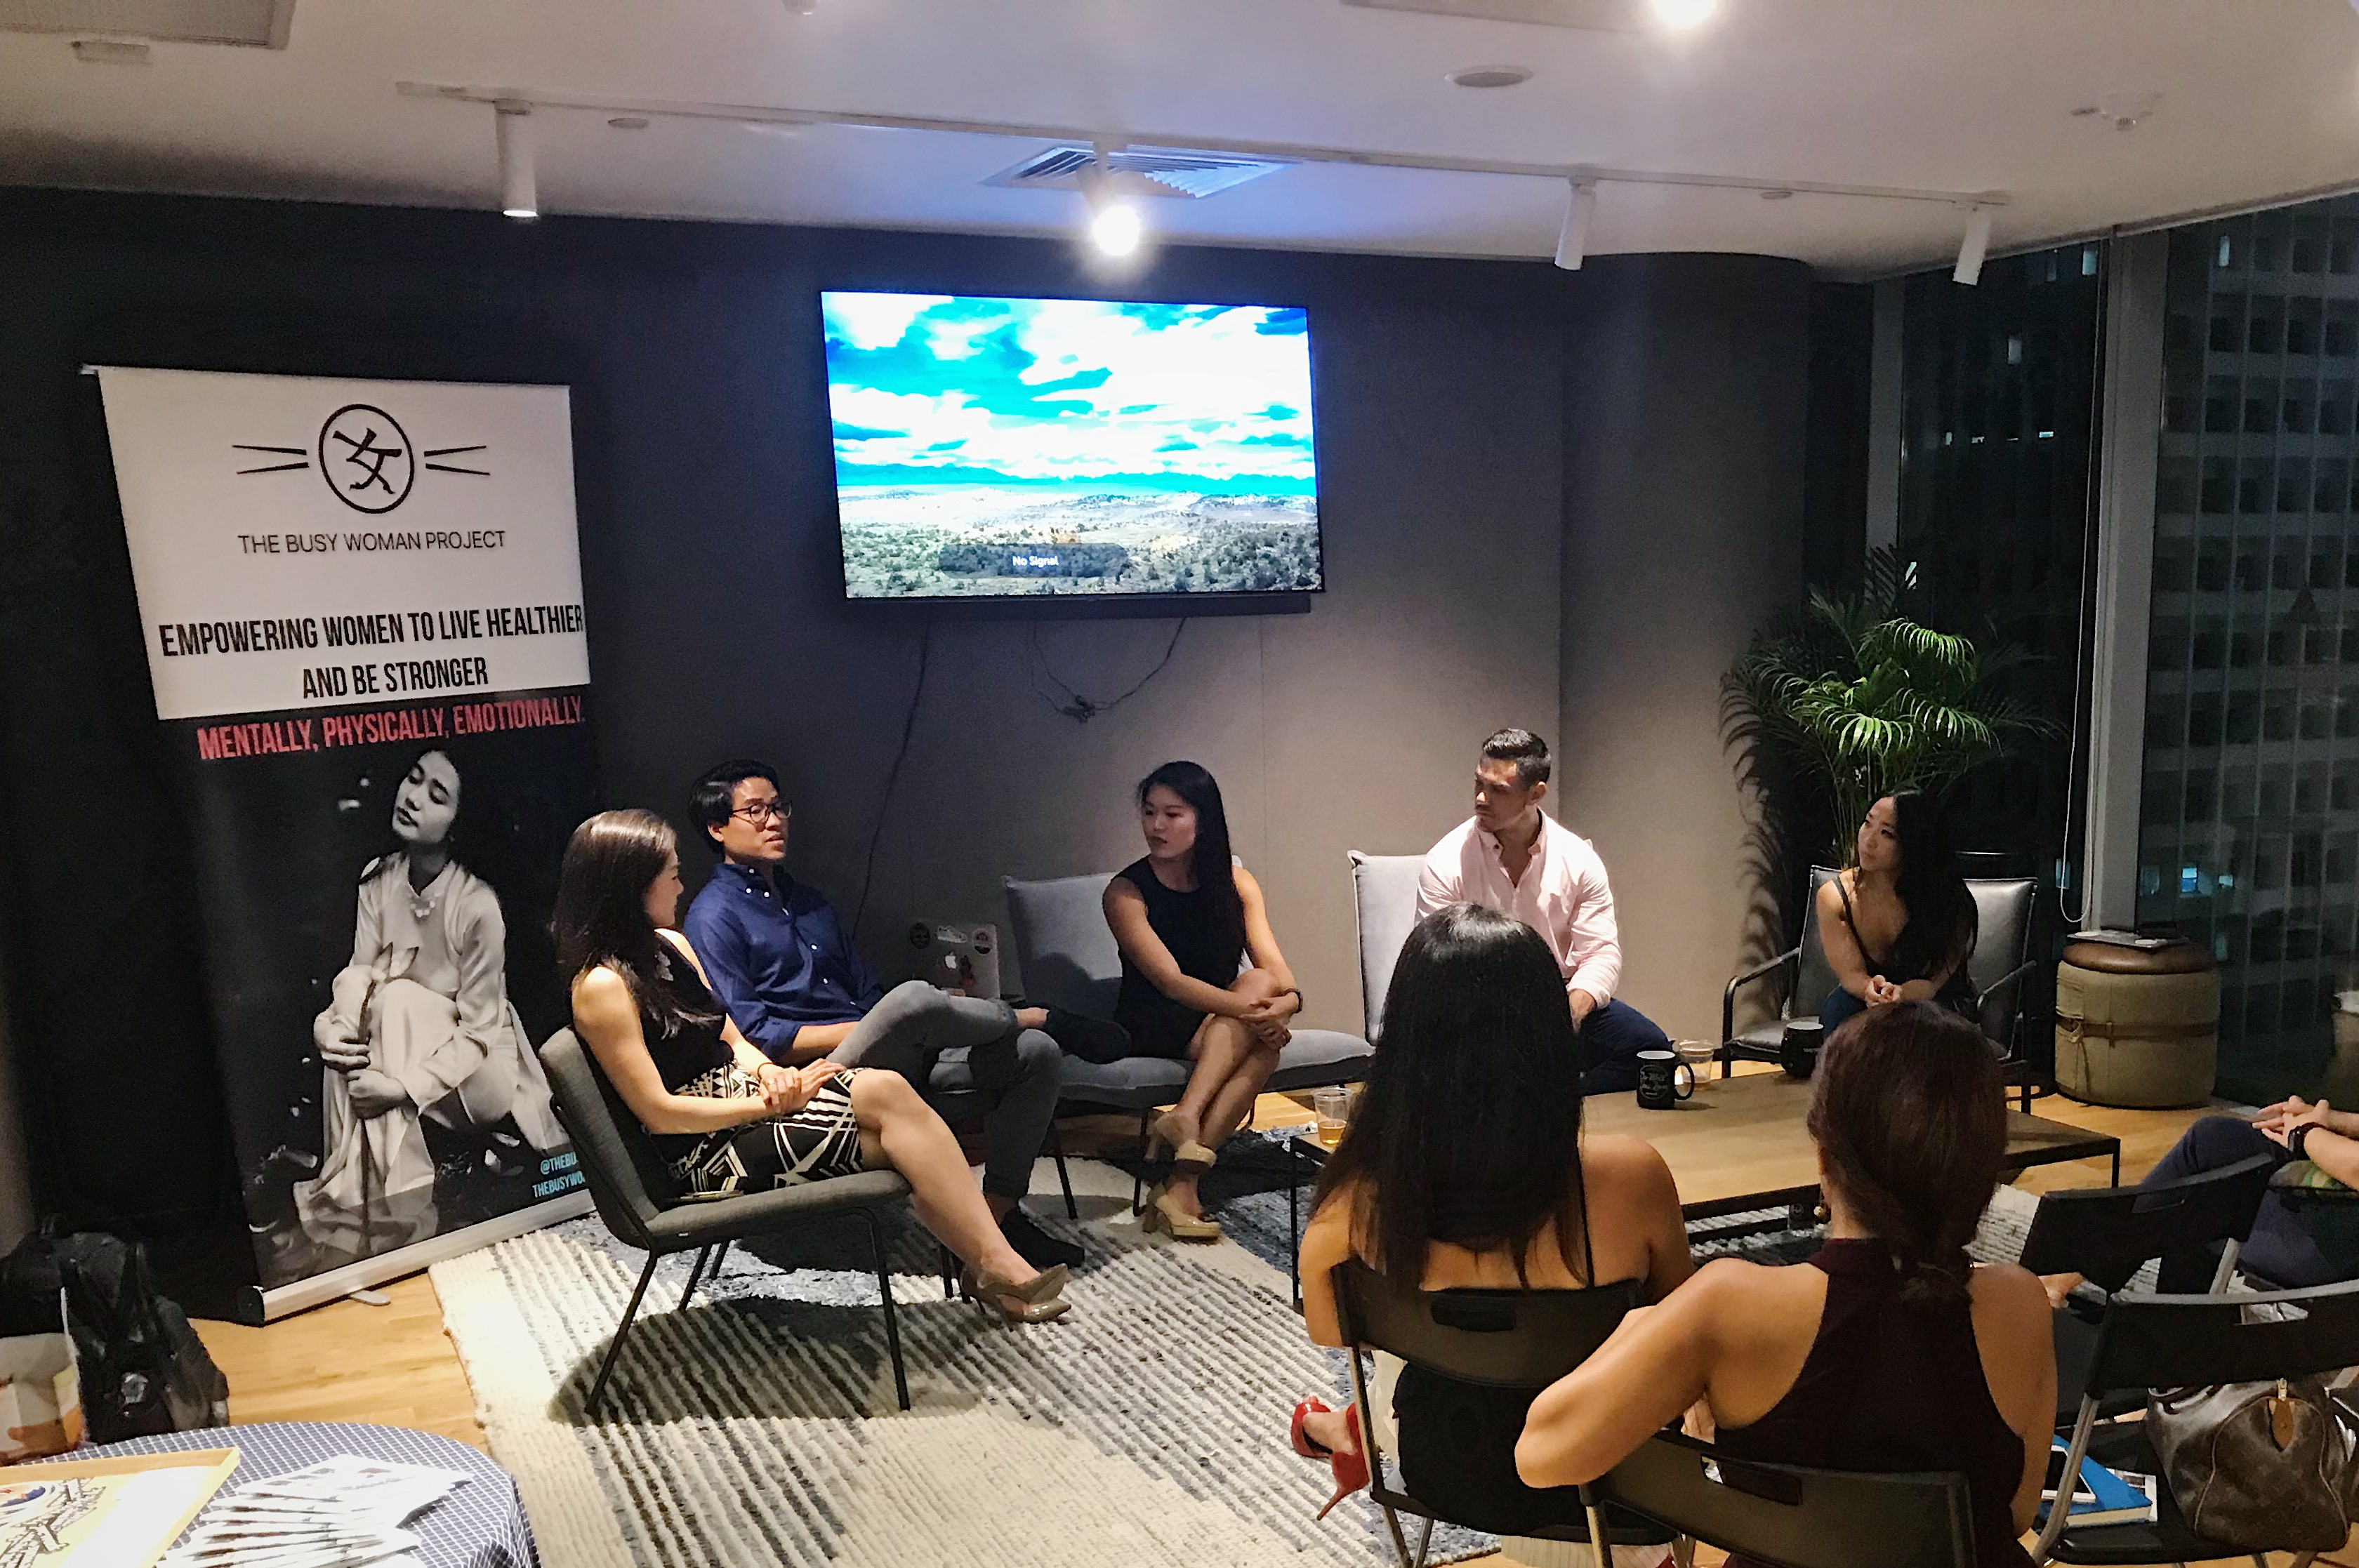 Actionable Insights from Live Panel - LIMITLESS SG: Overcoming Self-Limiting Barriers & Subconscious Biases